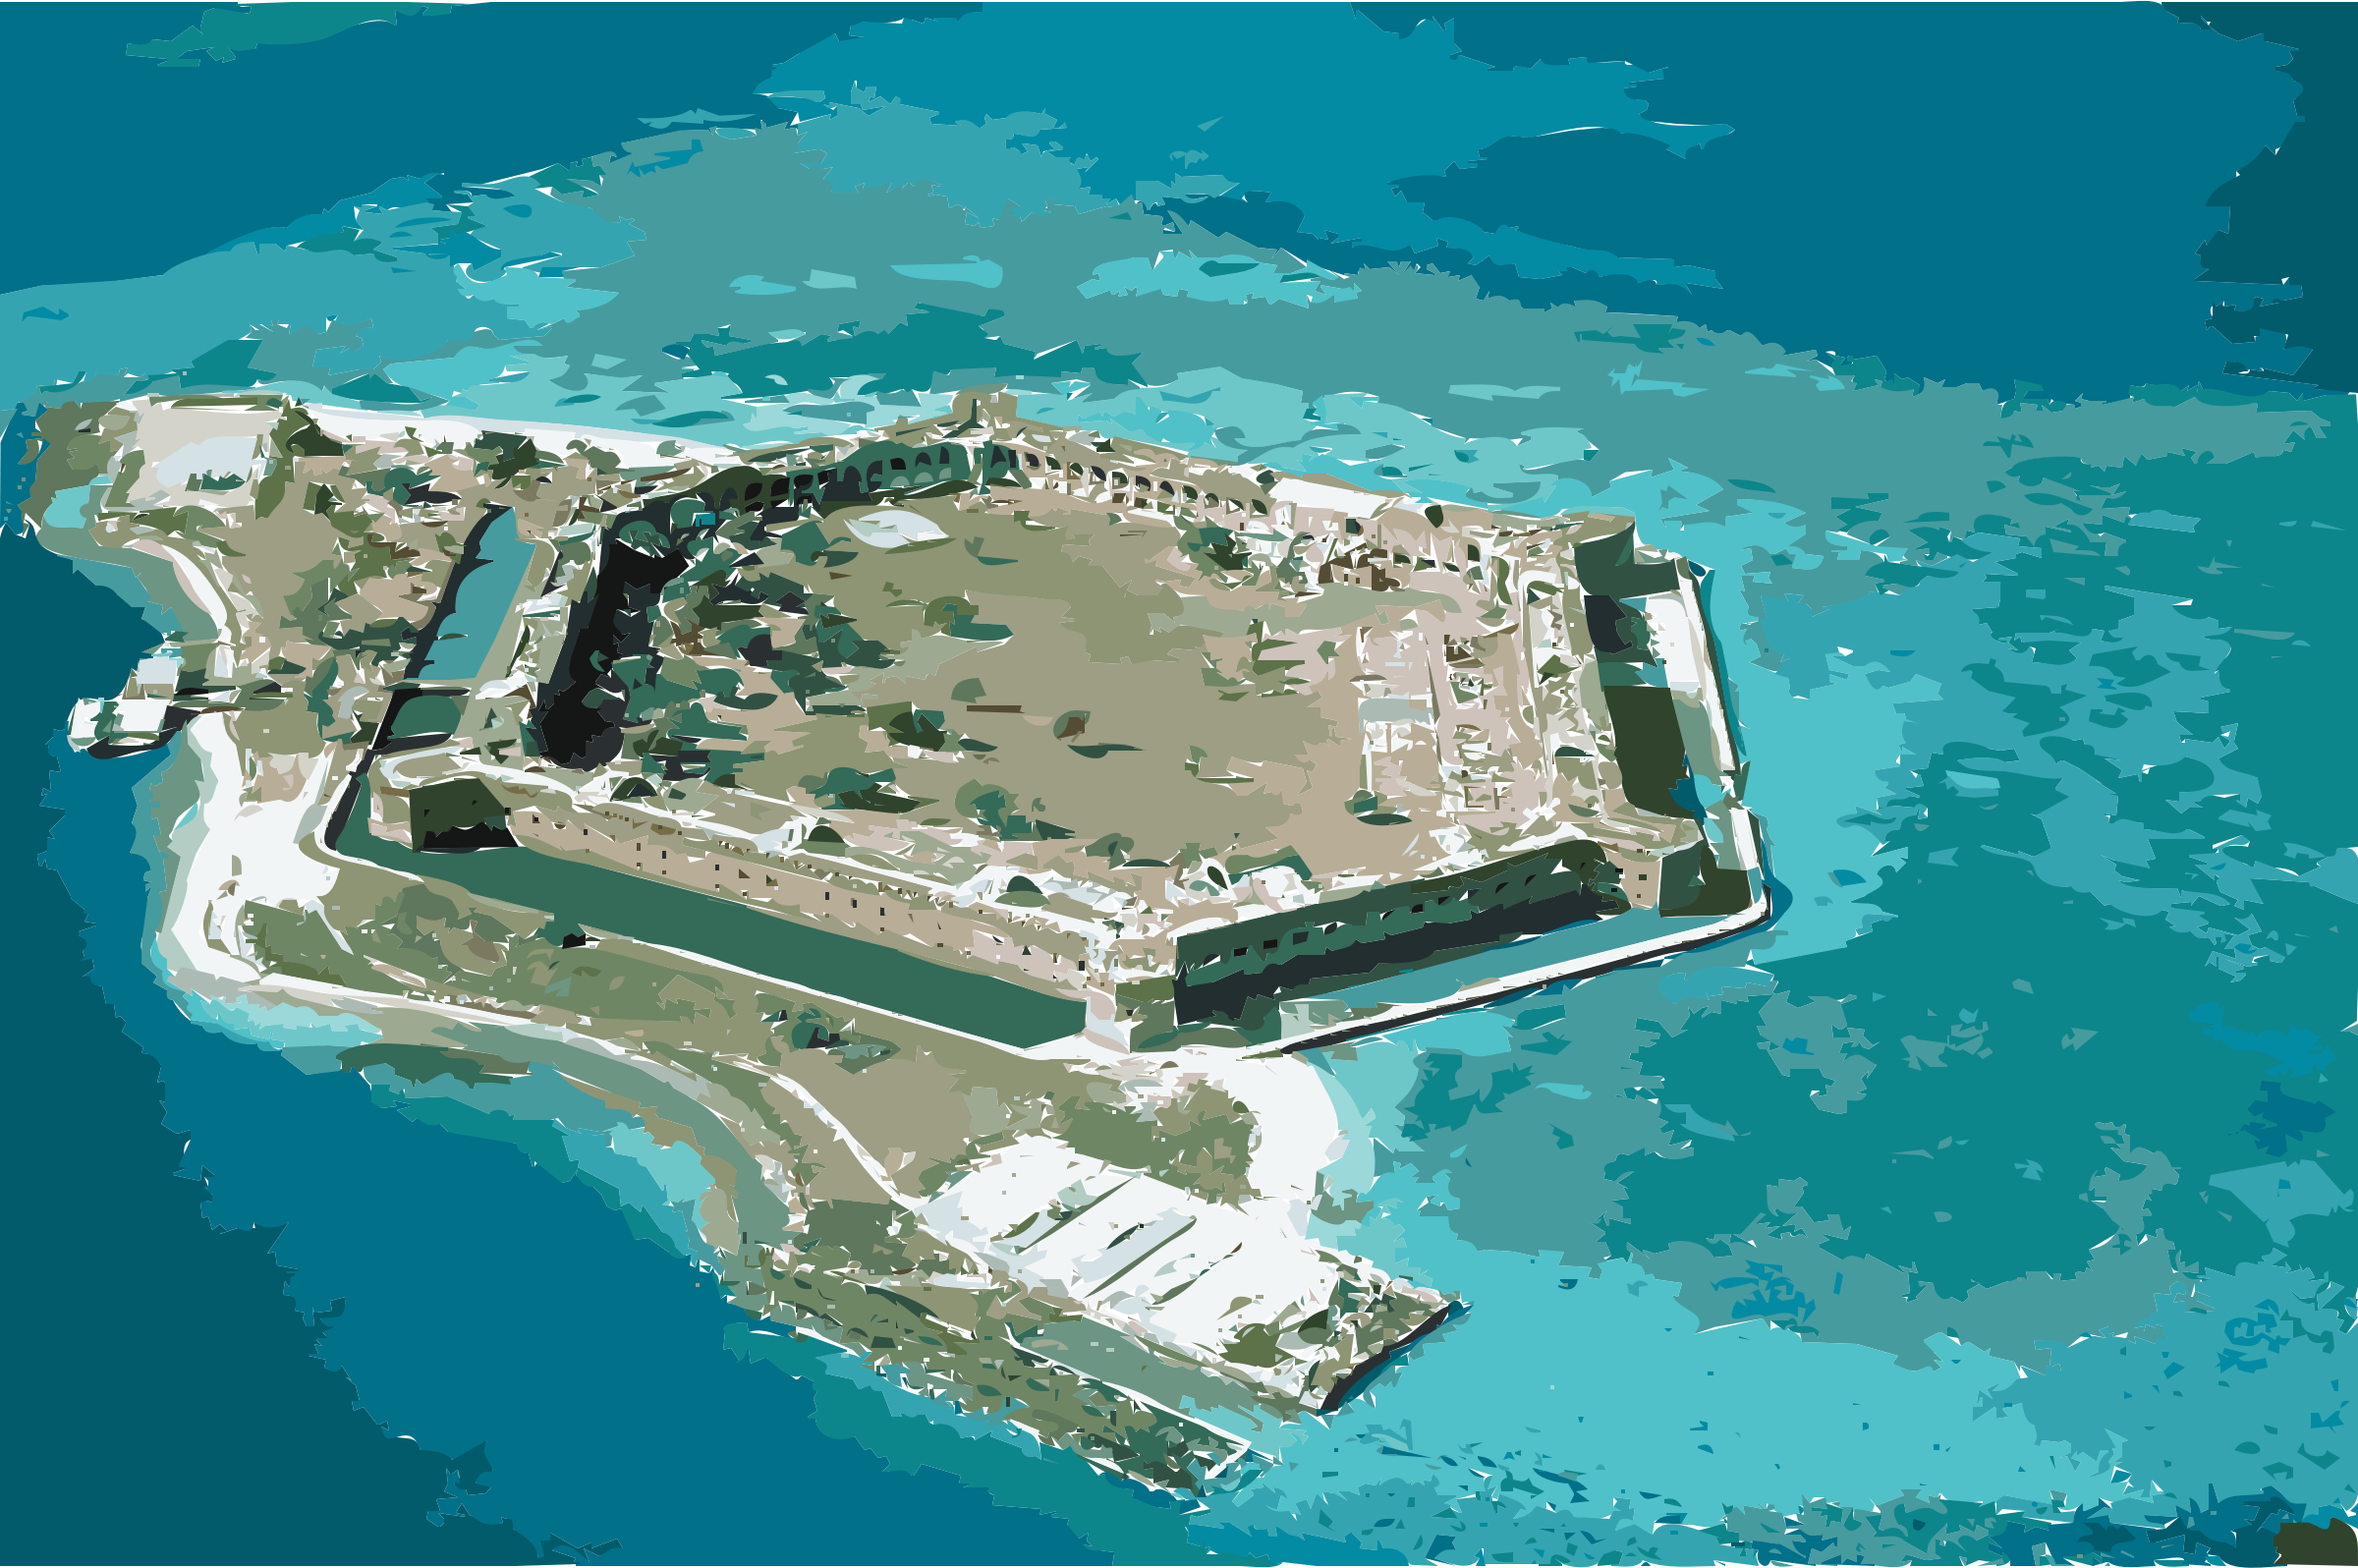 Fort-Jefferson Dry-Tortugas by 3wdob5+5vzcyh4n9vvo8